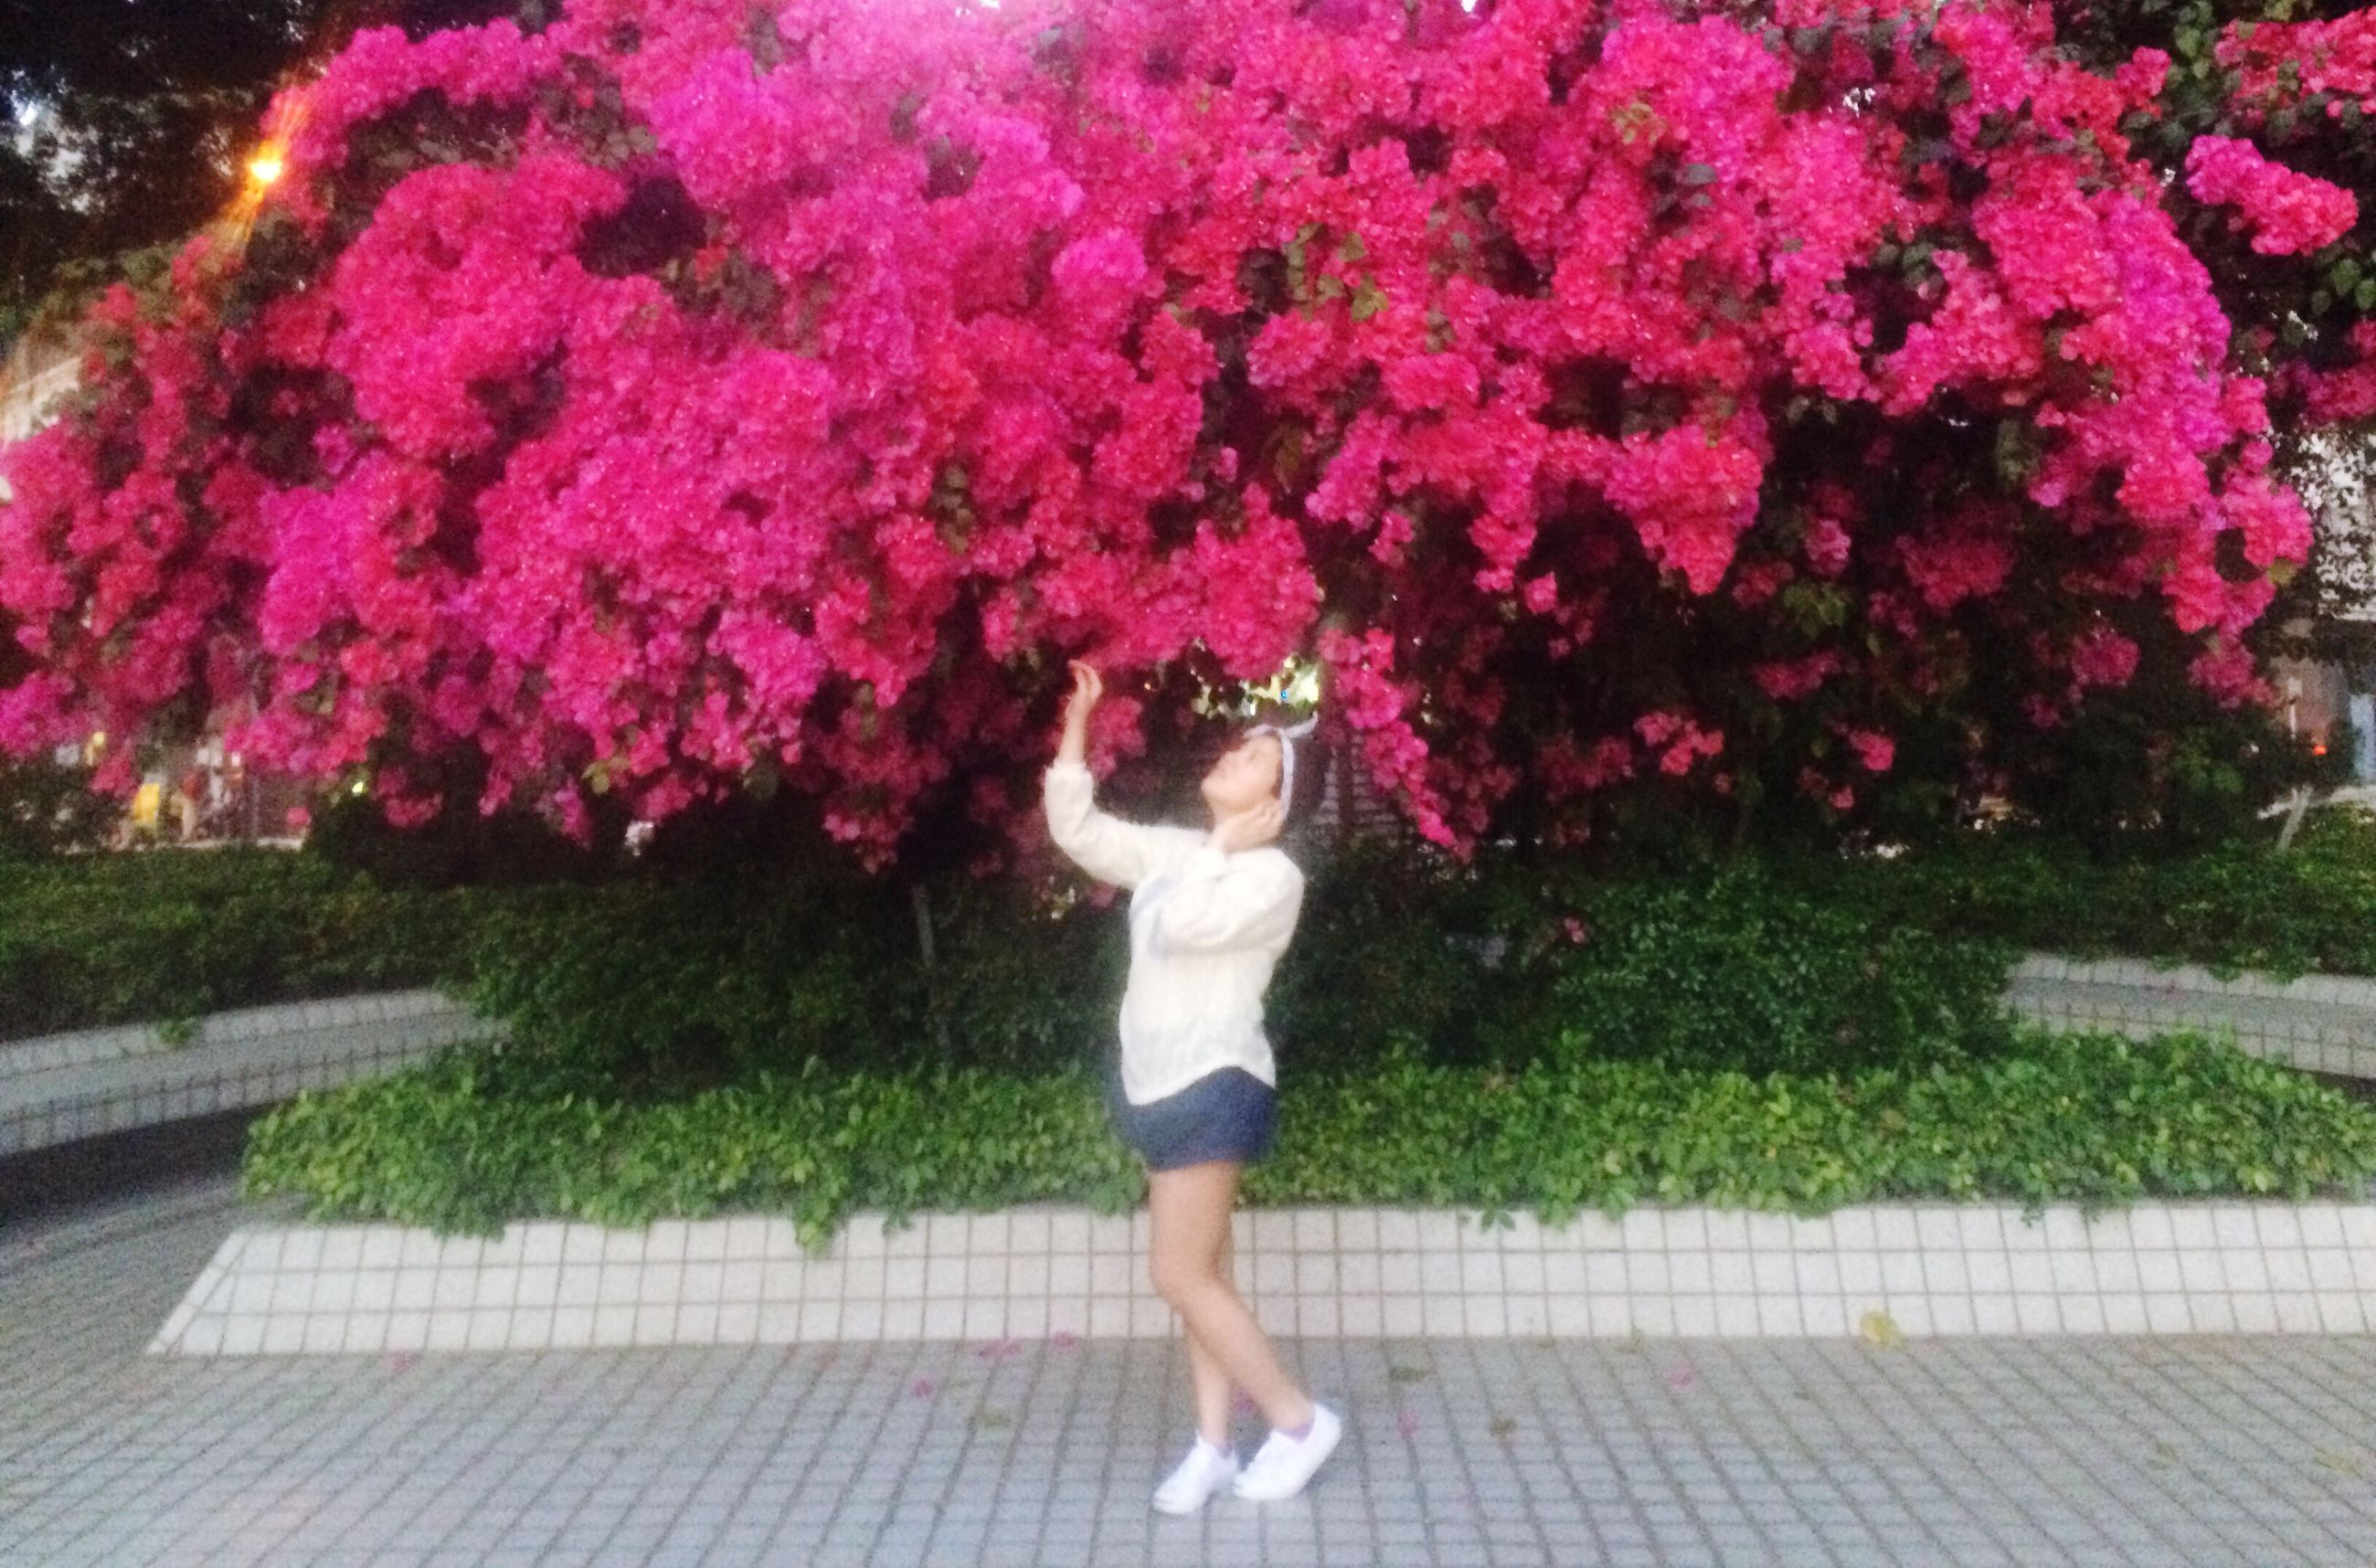 flower, lifestyles, full length, leisure activity, standing, casual clothing, person, pink color, growth, tree, park - man made space, young women, grass, plant, dress, young adult, outdoors, freshness